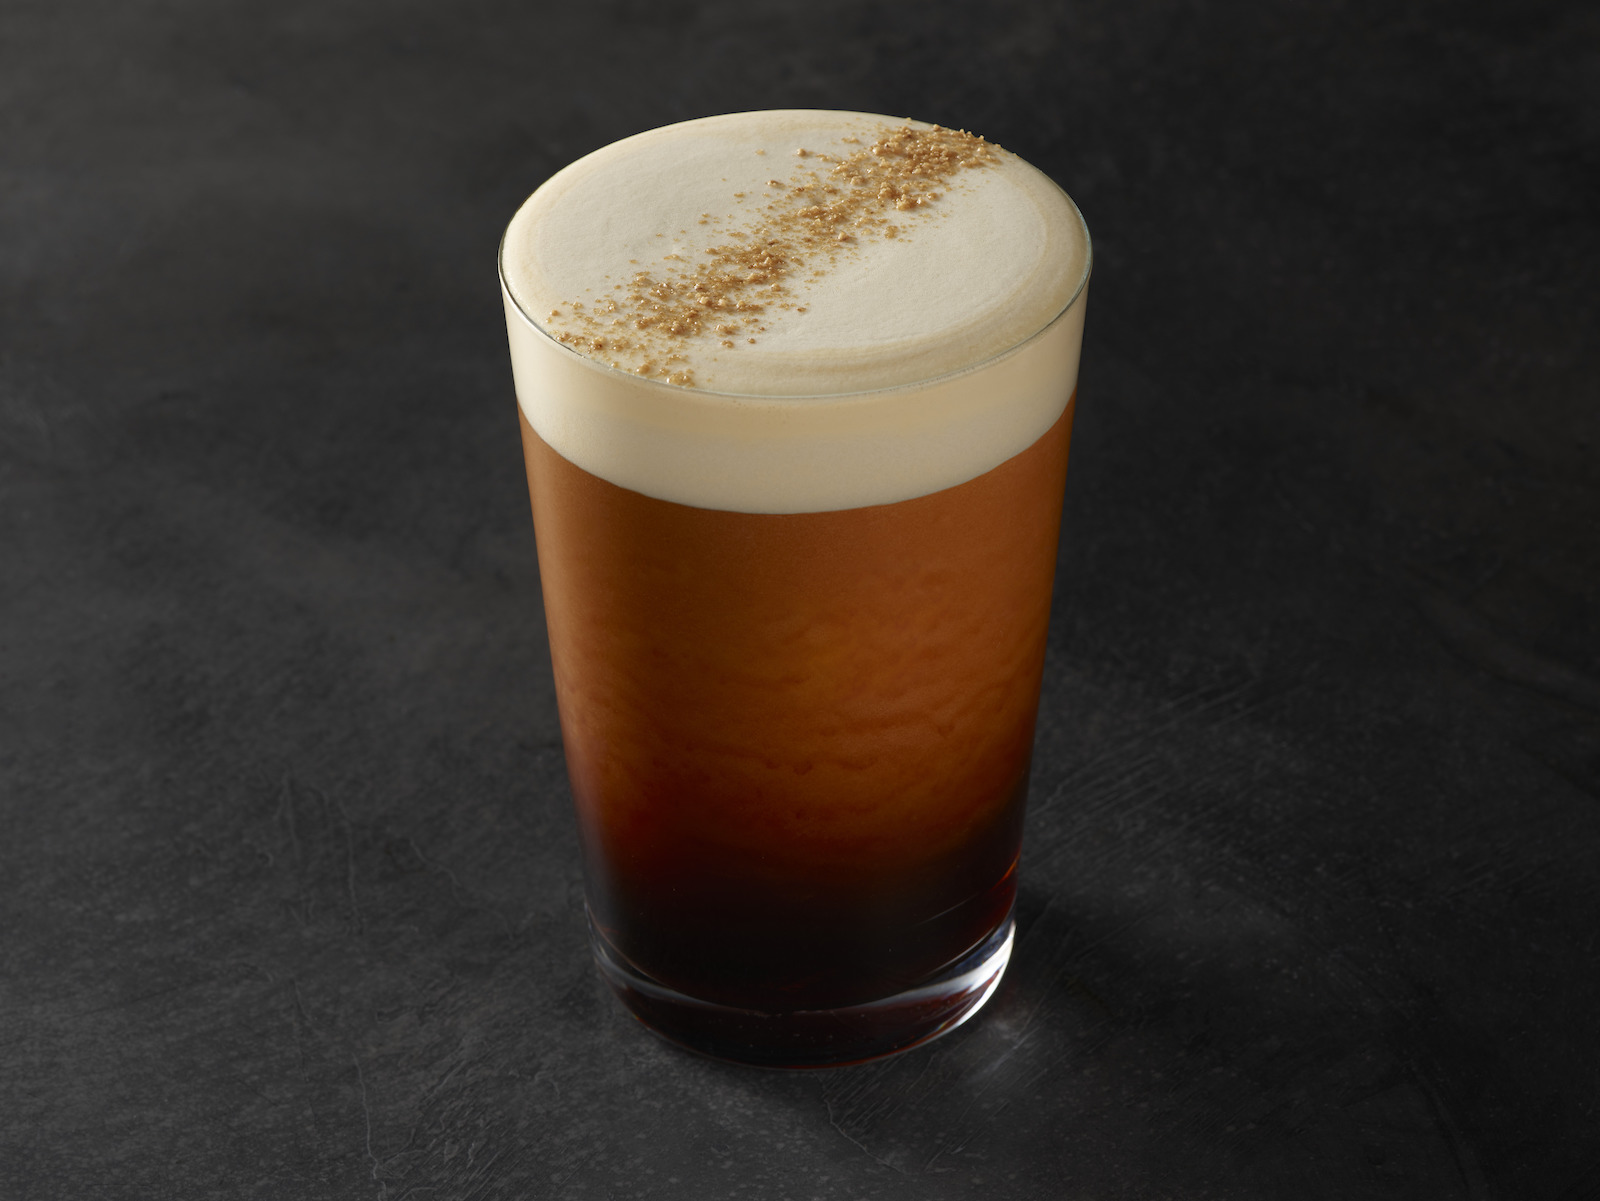 Starbucks' Cold Foam Adds a Frothy Top to Your Iced Coffee